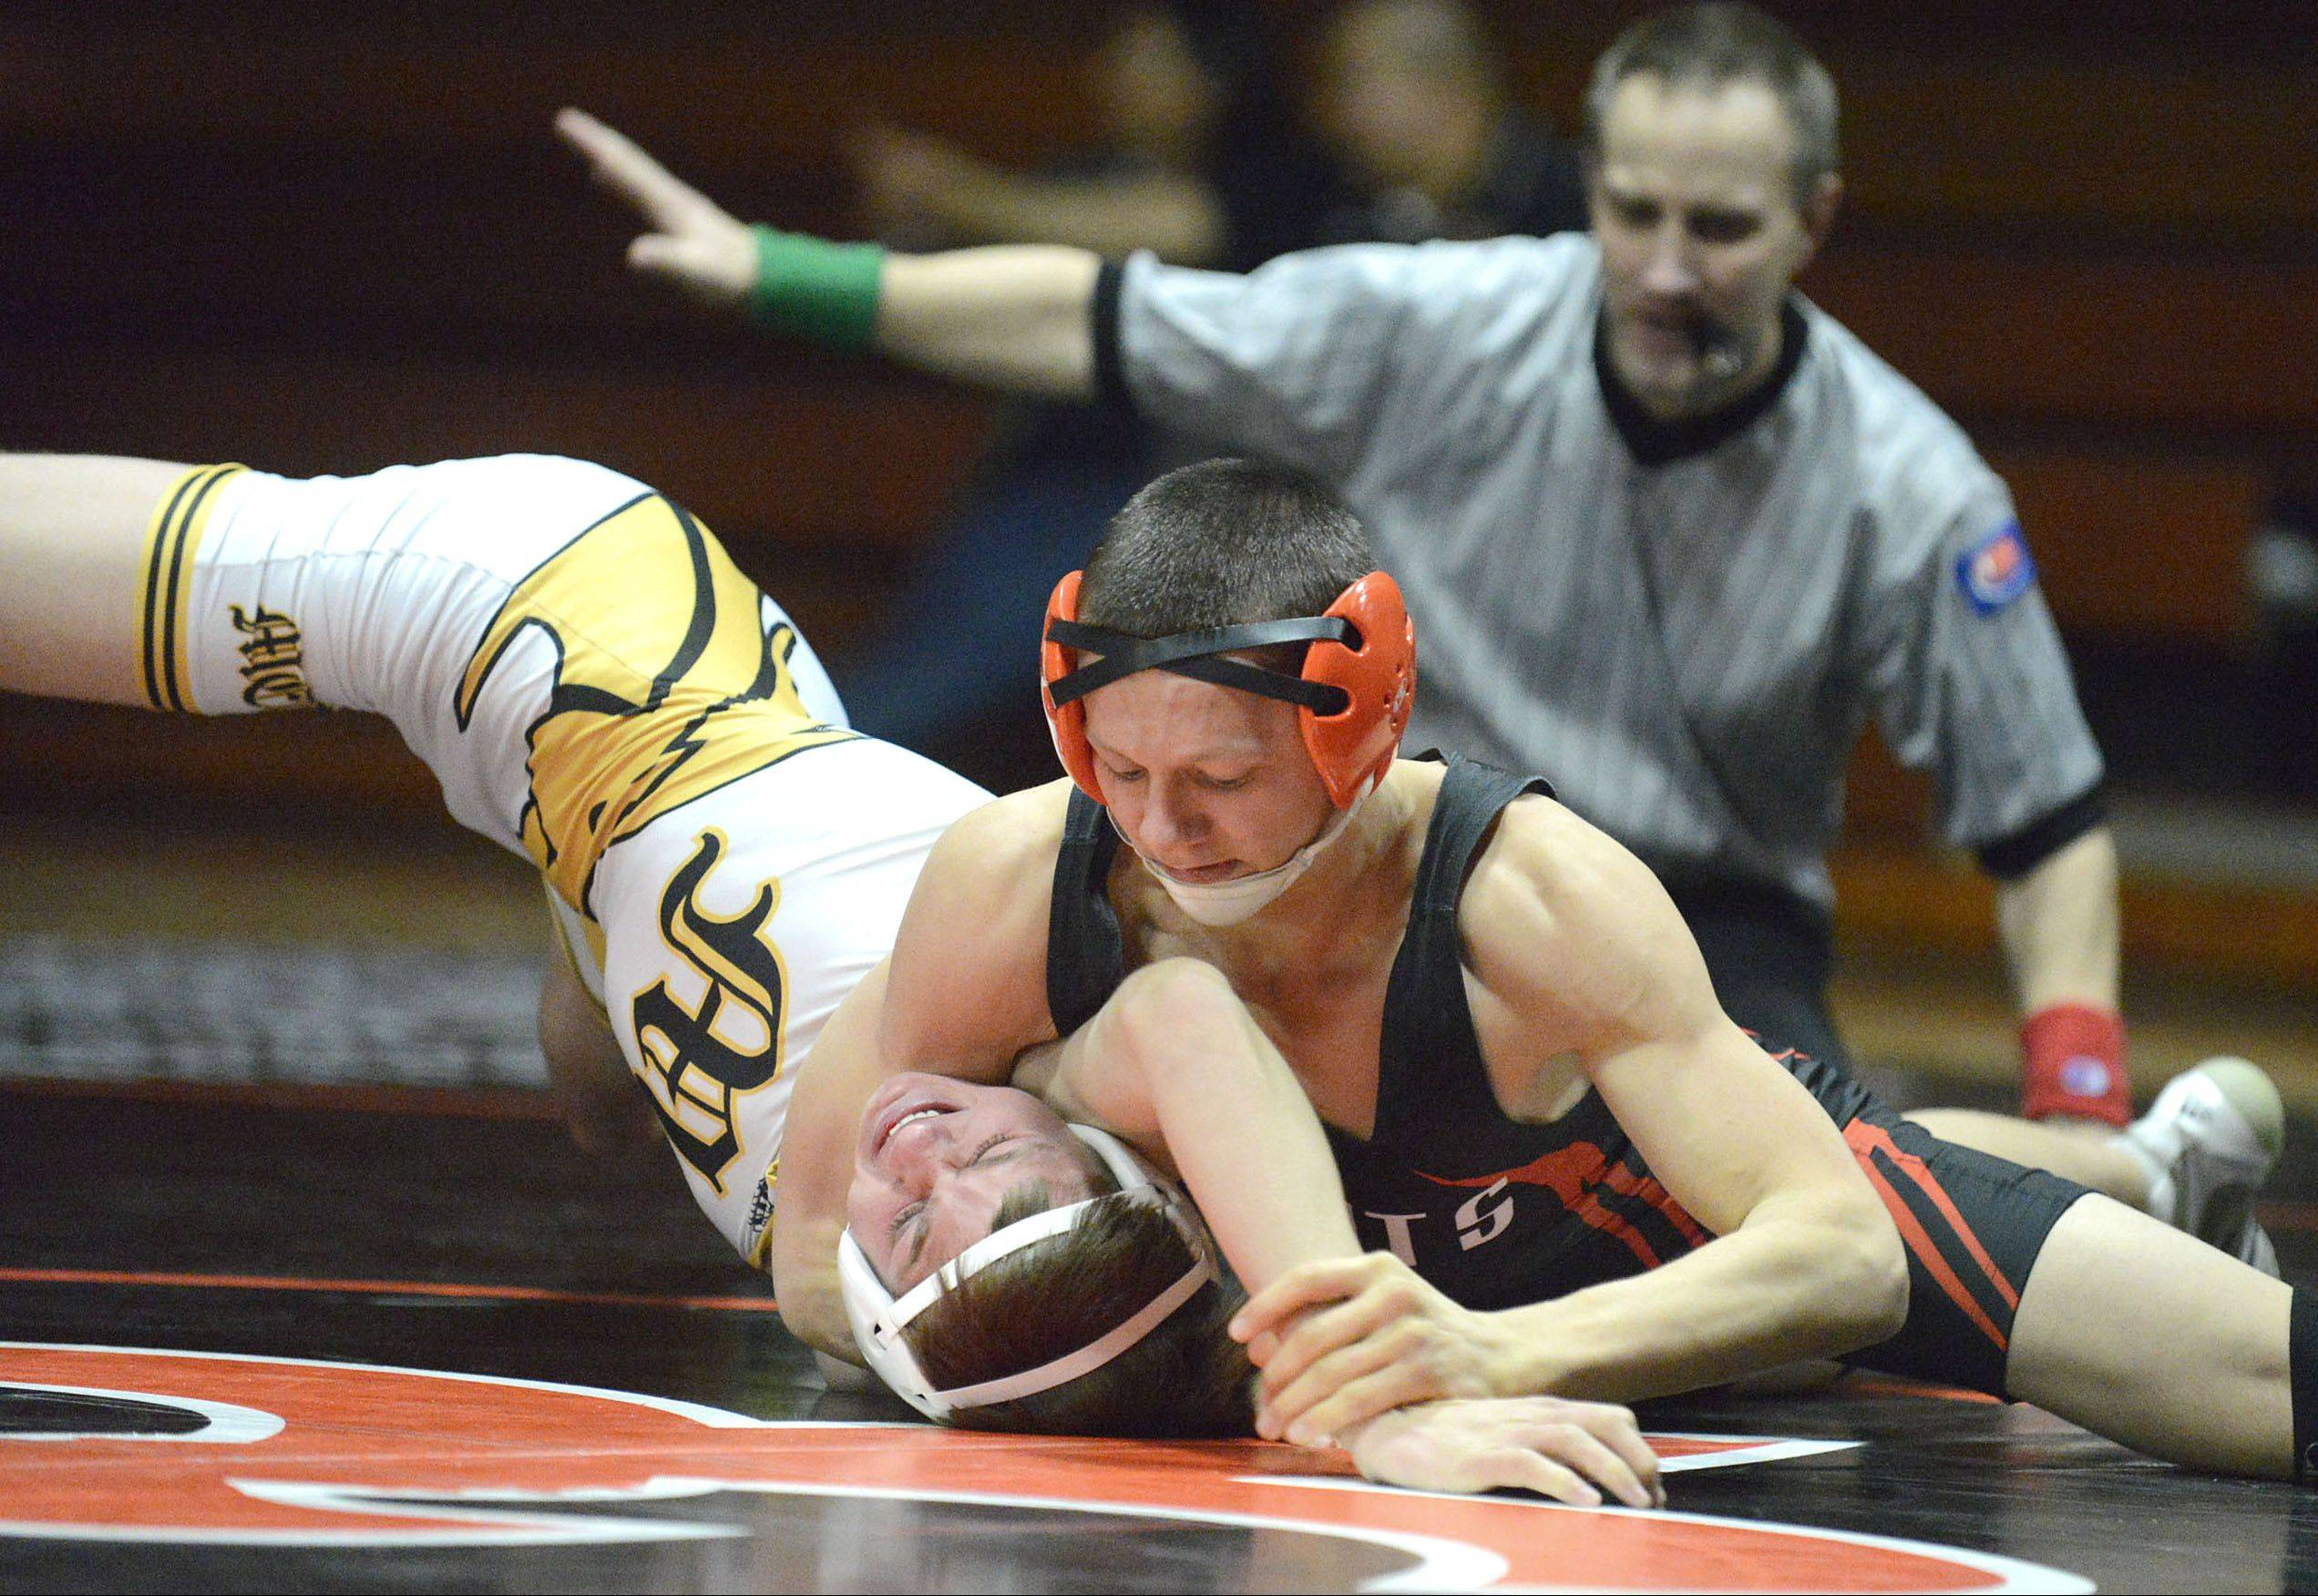 St. Charles East's Ryan Valesh won his 132-pound match over Metea Valley's David Veitch on Thursday in St. Charles.